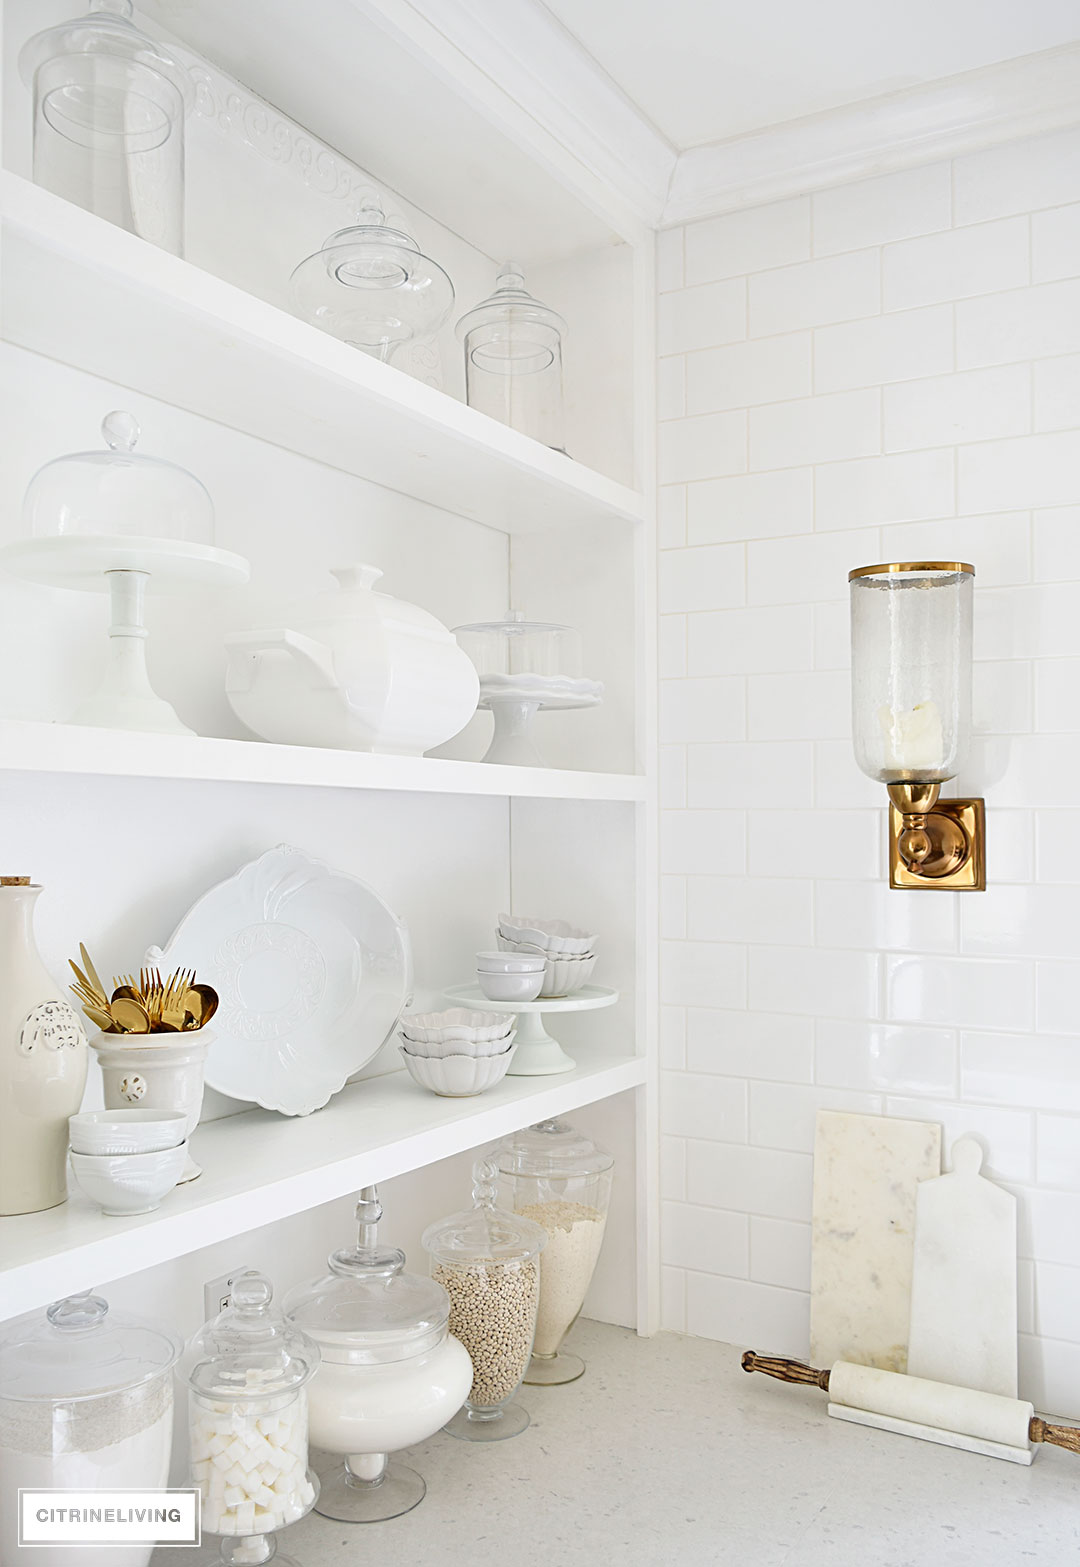 Bring vintage flair to your open kitchen shelving with a mix of white and cream serving pieces and dishware for a fresh, layered look.